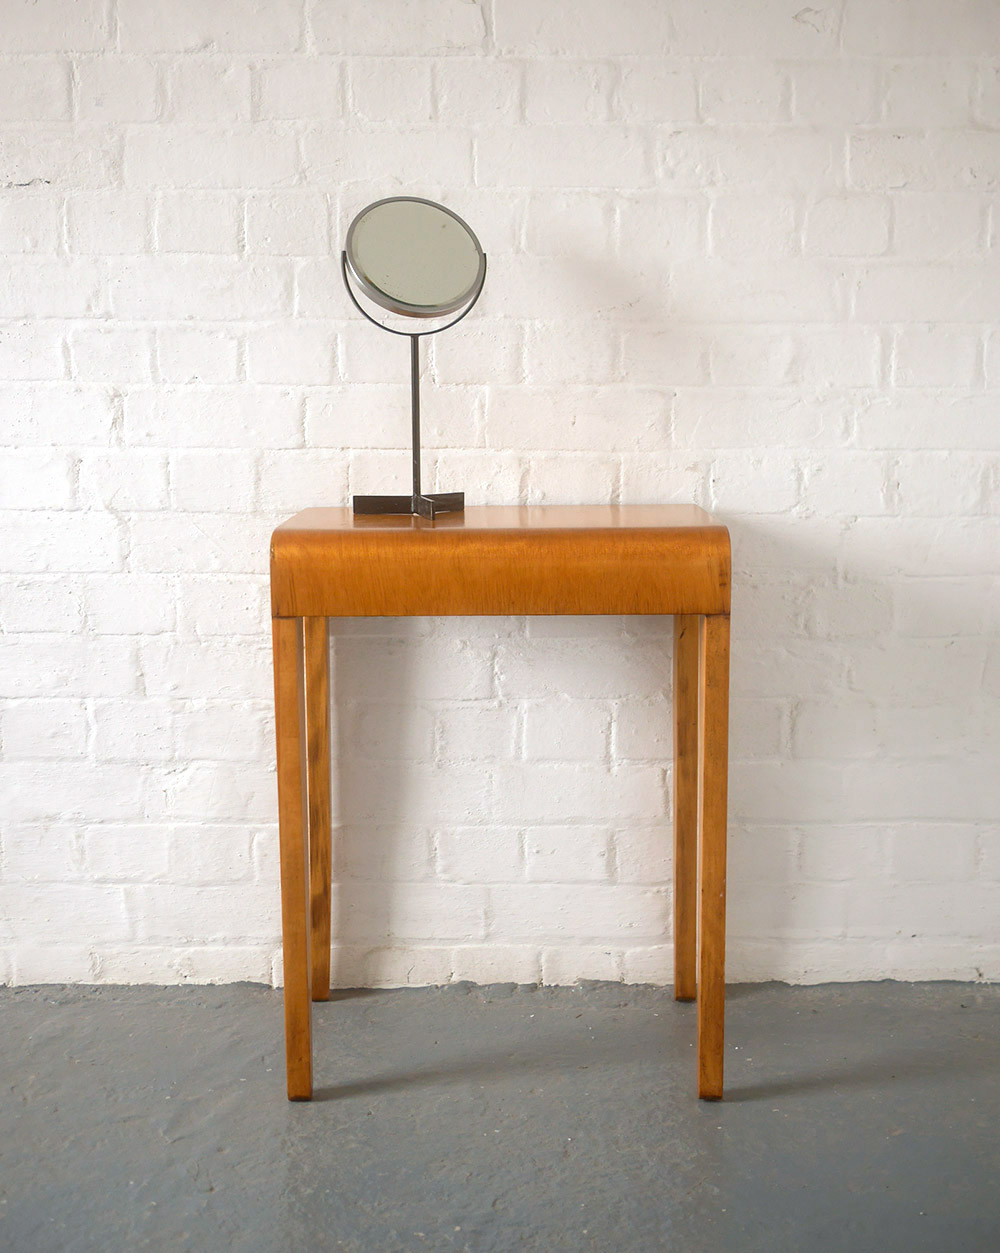 1930s Gordon Russell plywood table